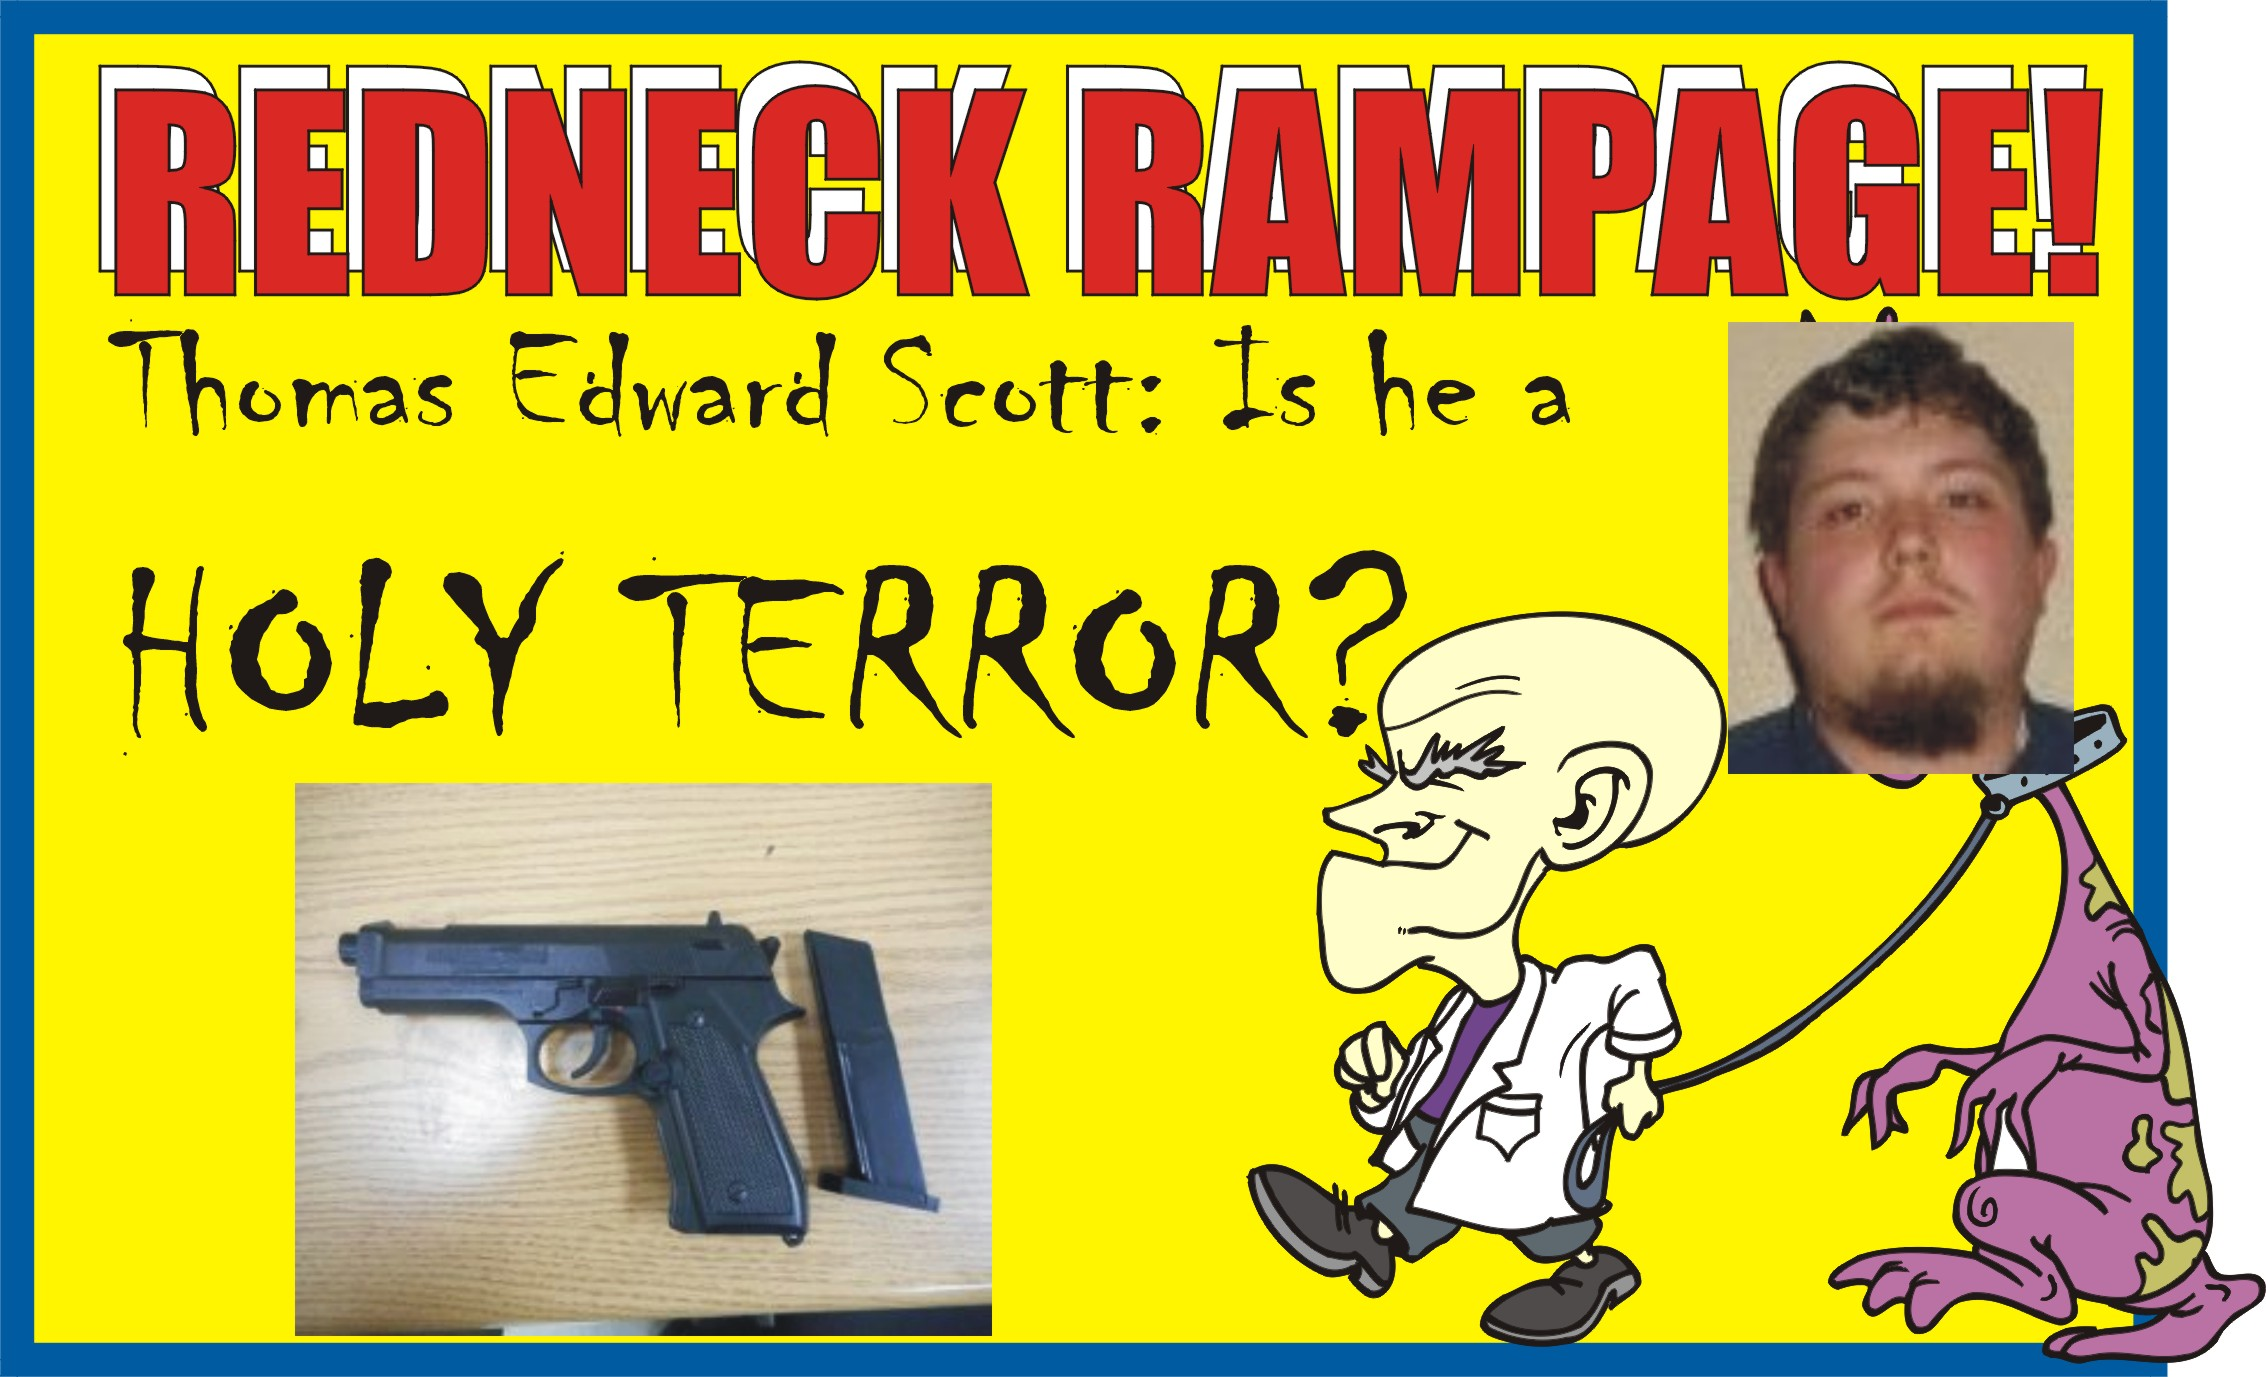 REDNECK RAMPAGE: Brandishing gun on Rt. 295 lands Thomas Edward Scott in slammer after troopers closed in on his mighty Mustang galloping in road rage.